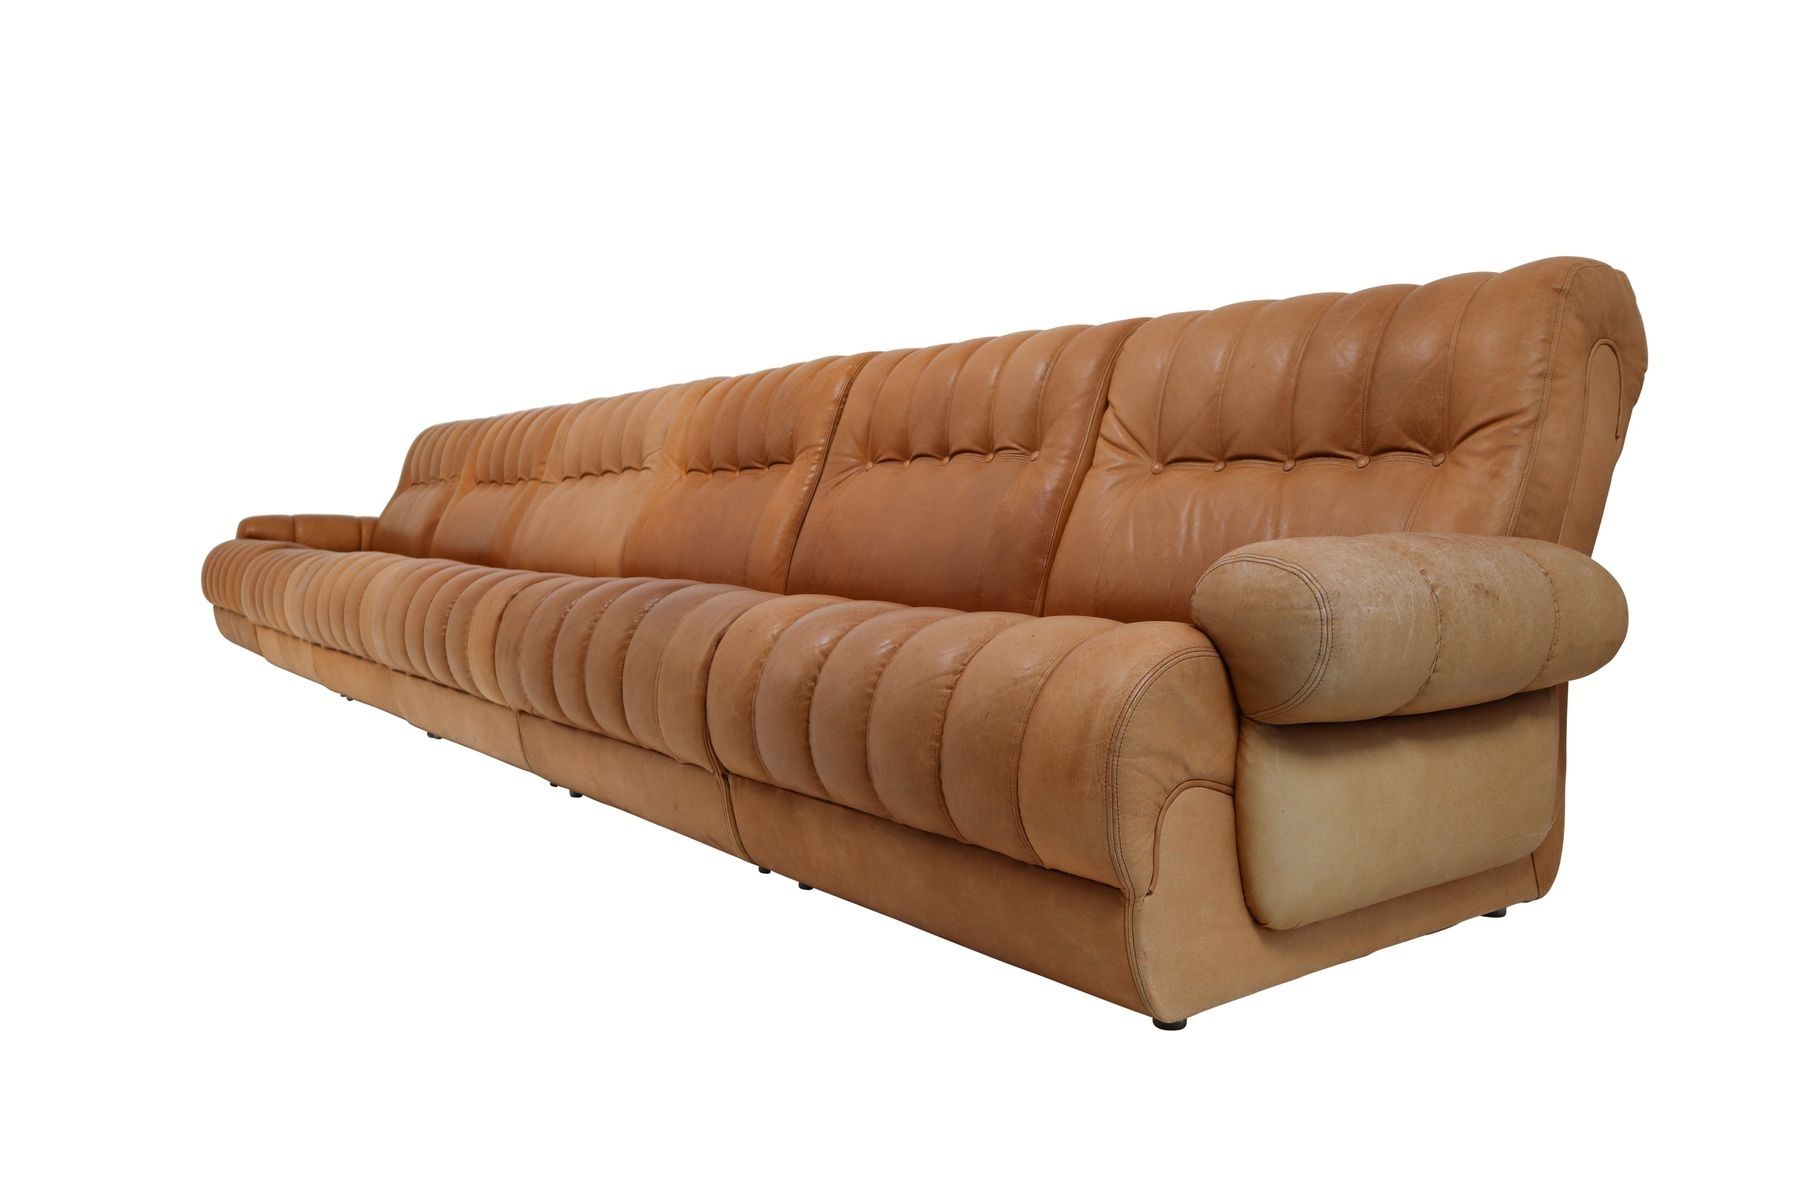 Cognac Leather Sectional Sofa | Baci Living Room throughout Tenny Cognac 2 Piece Left Facing Chaise Sectionals With 2 Headrest (Image 6 of 30)